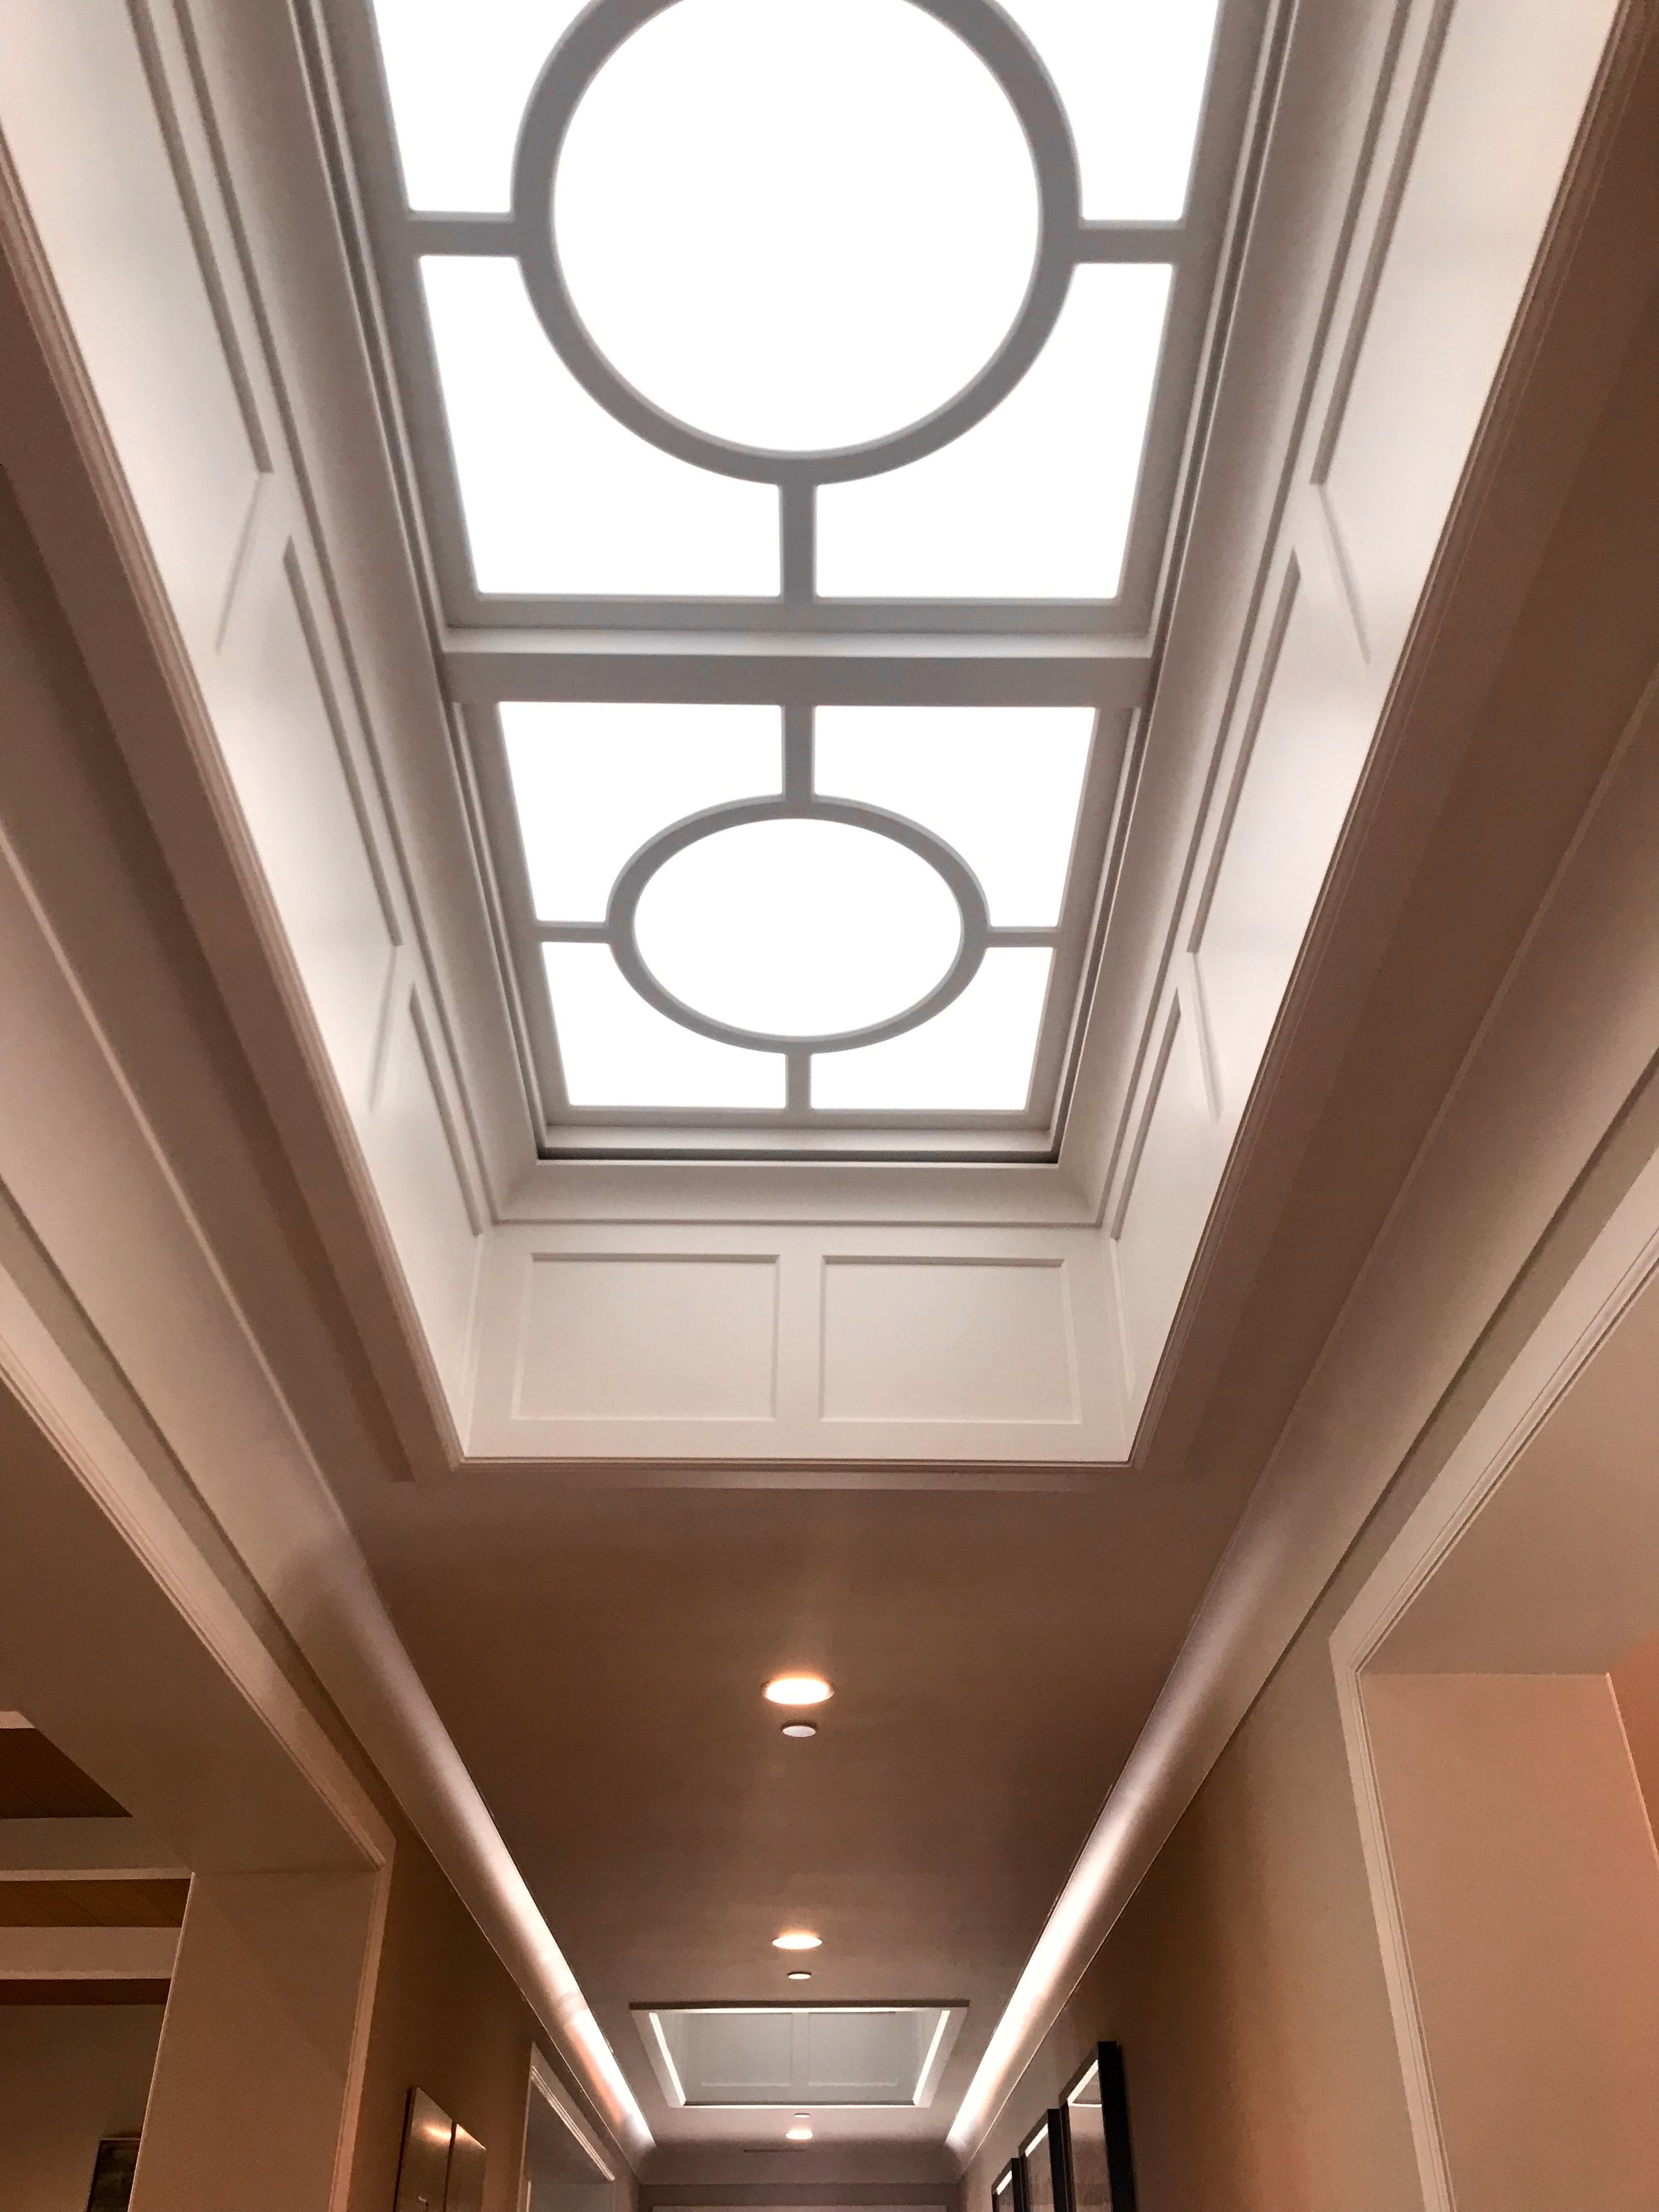 Custom skylights allow natural light along the main path of travel, paneling surrounds the sides of the ceiling alcove with circular moulding and frosted acrylic insets above.